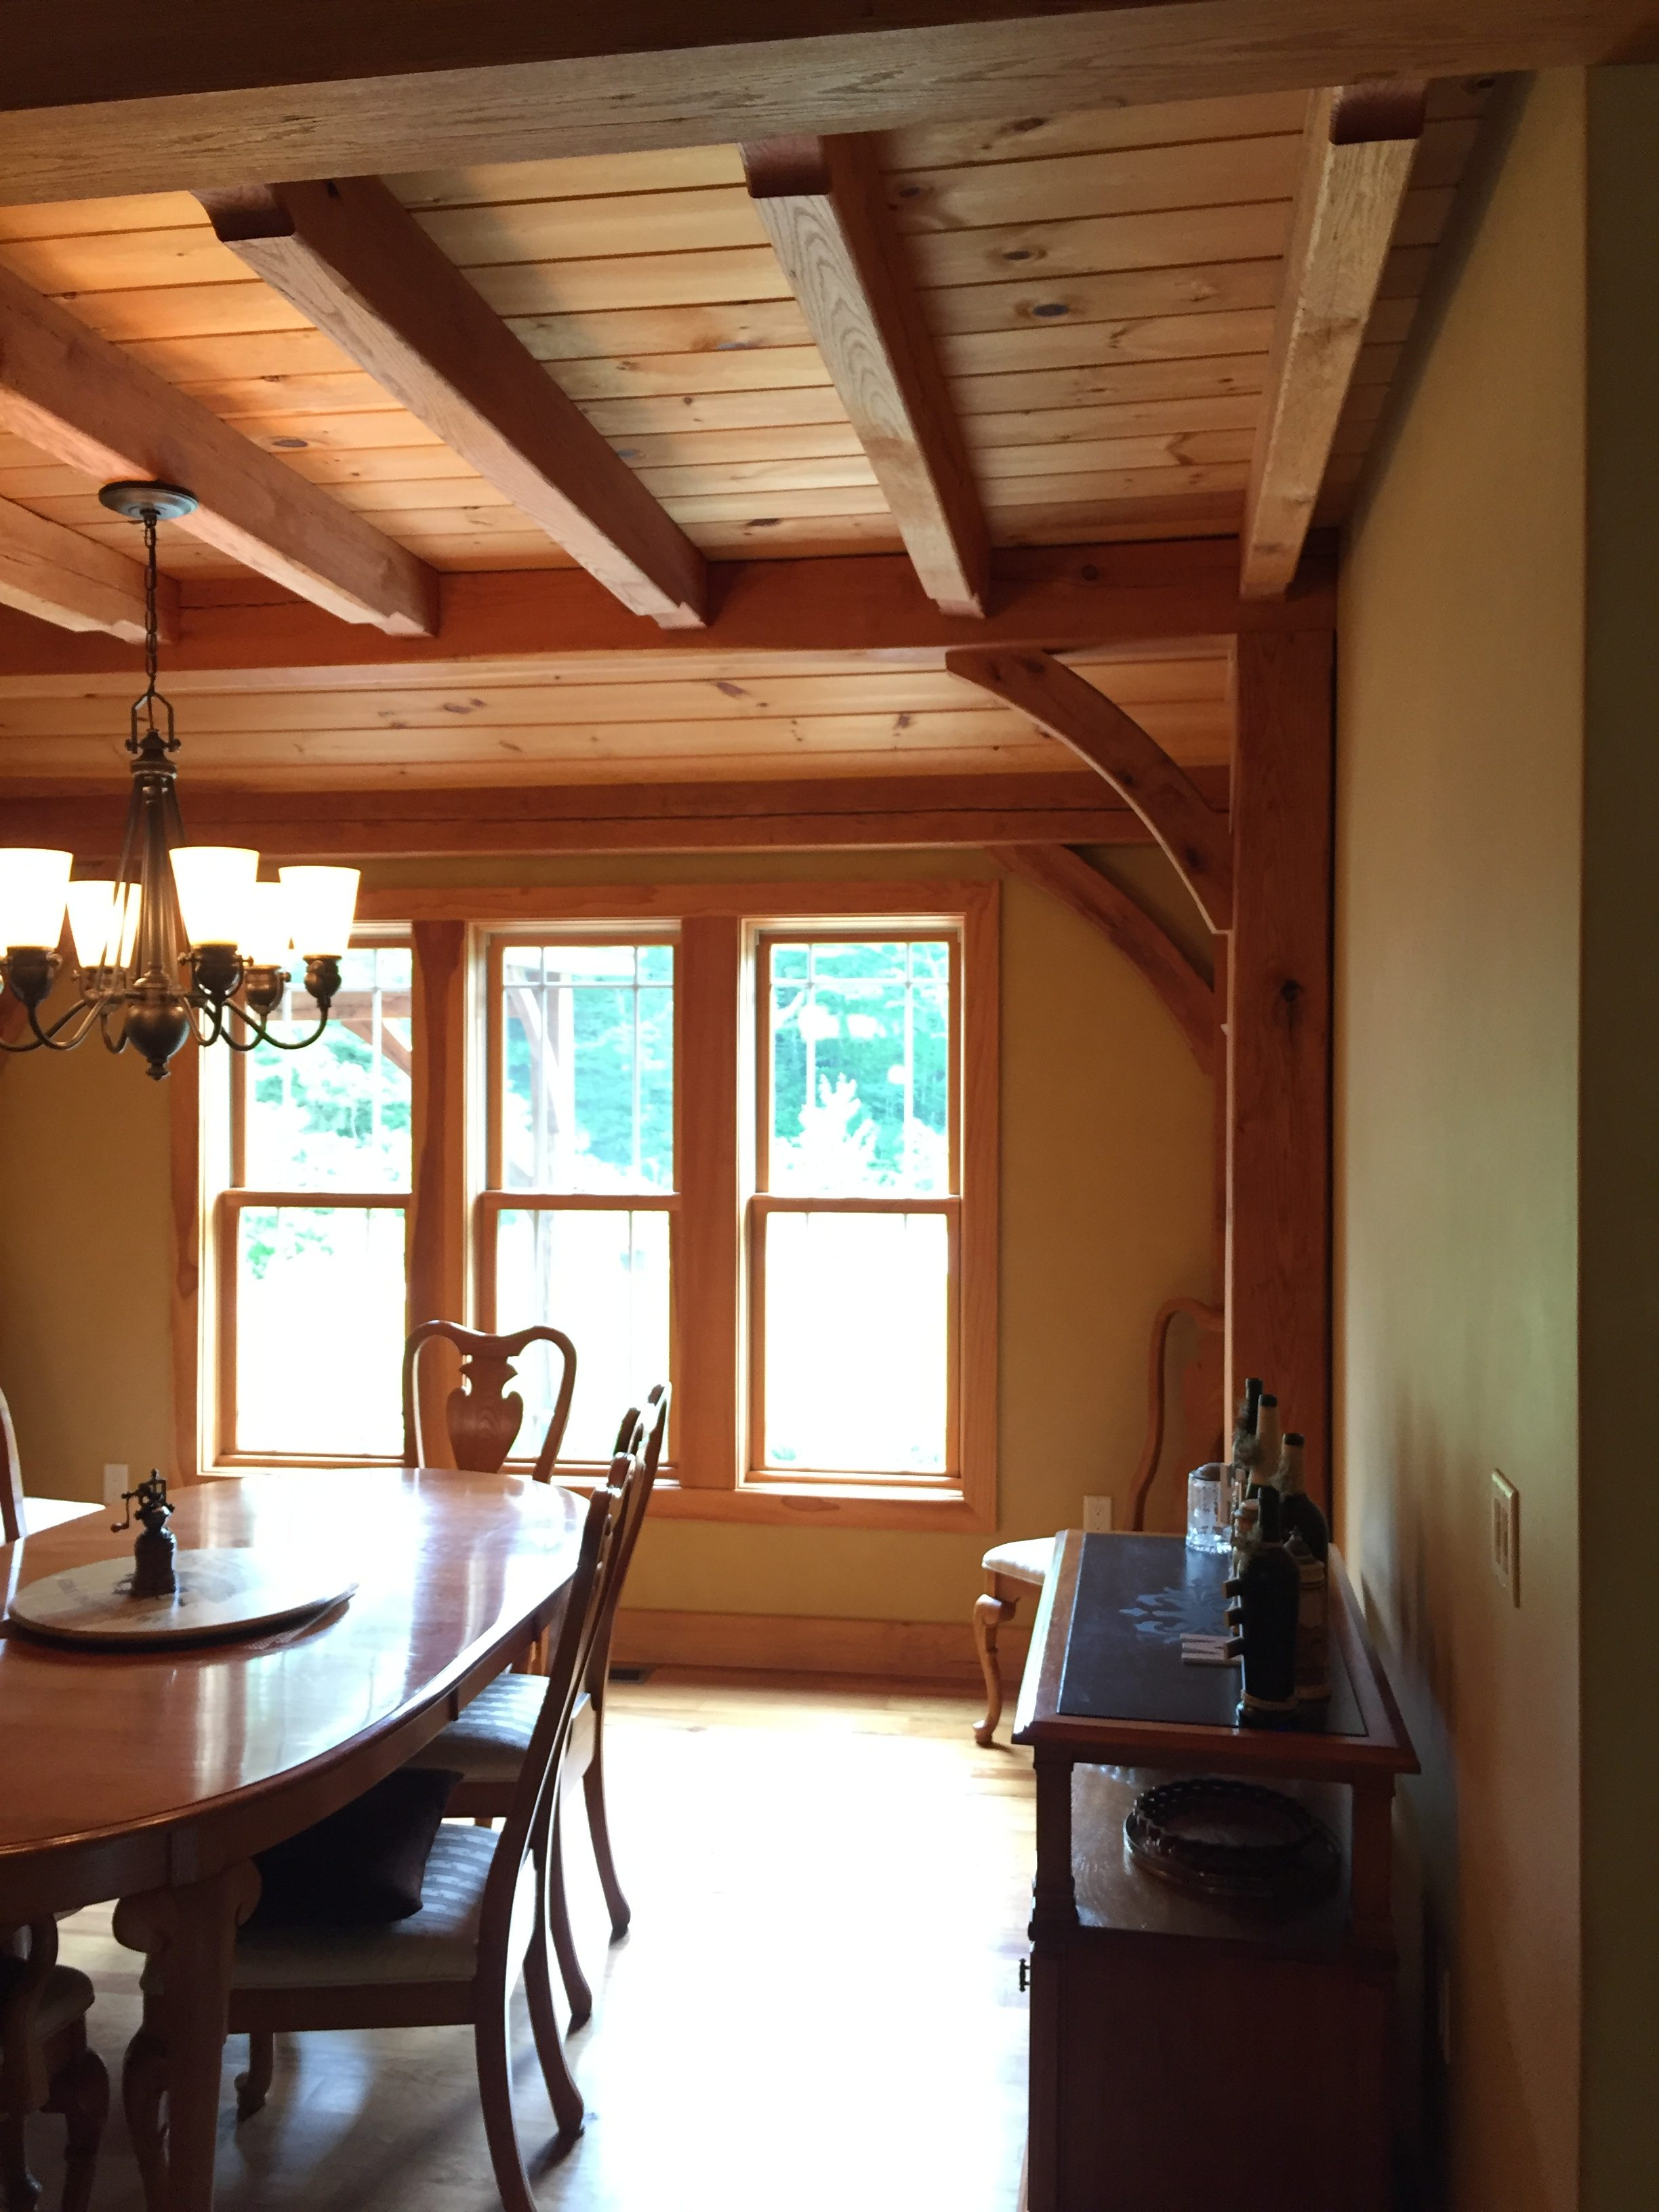 Beauty of Timber Frame Ceiling in Dining Room